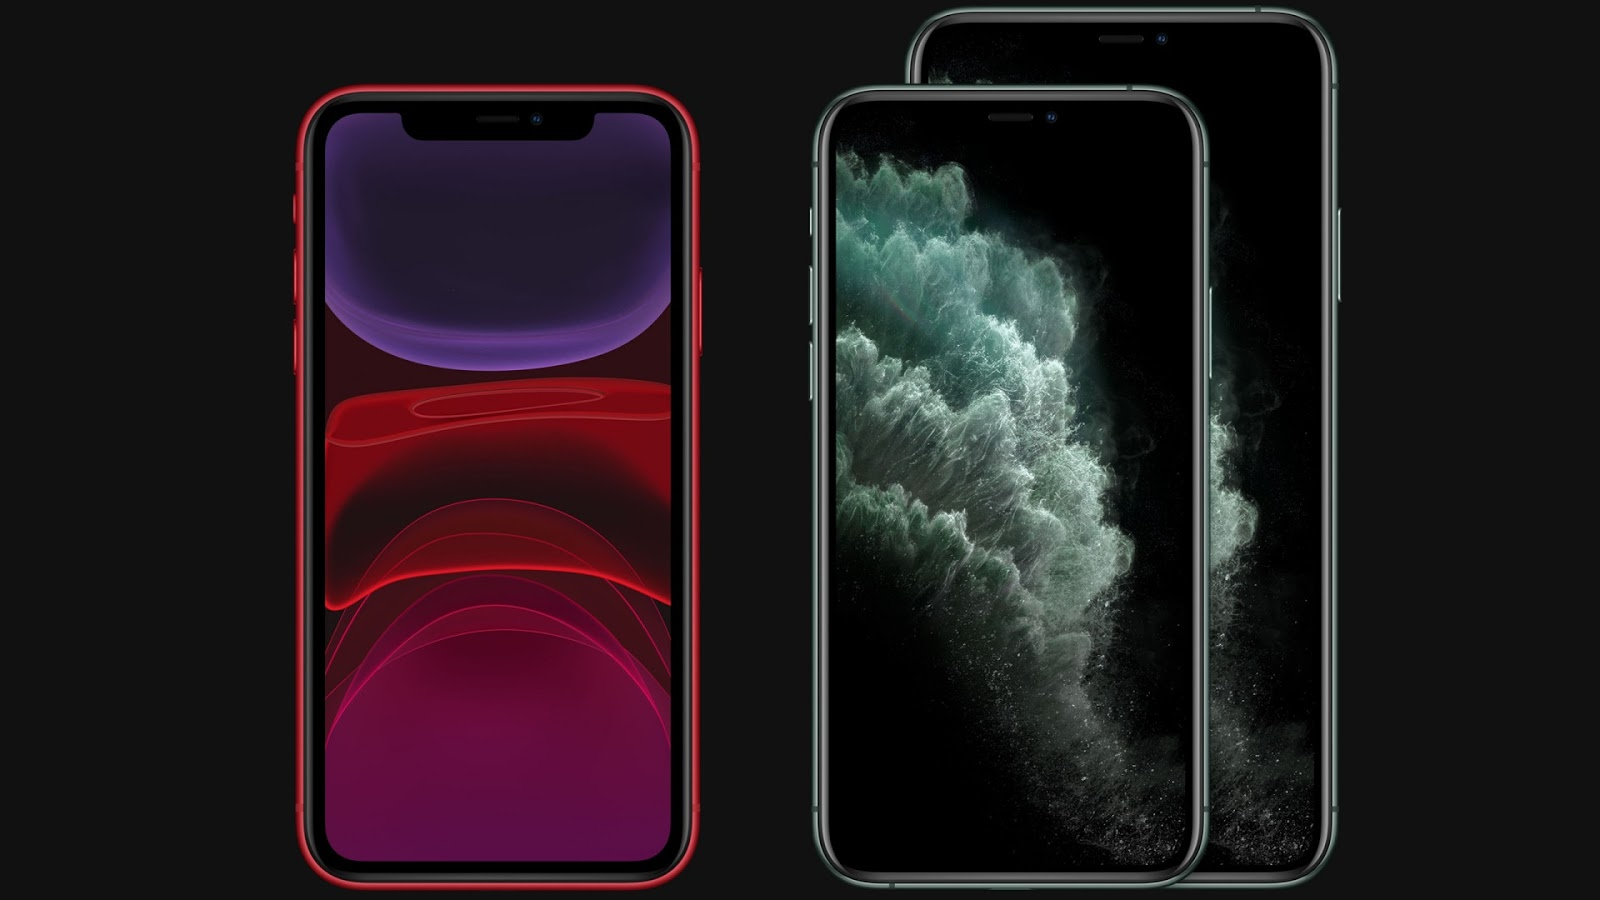 Iphone 11 Iphone 11 Pro Iphone 11 Max Wallpapers Wallpapers Overflow